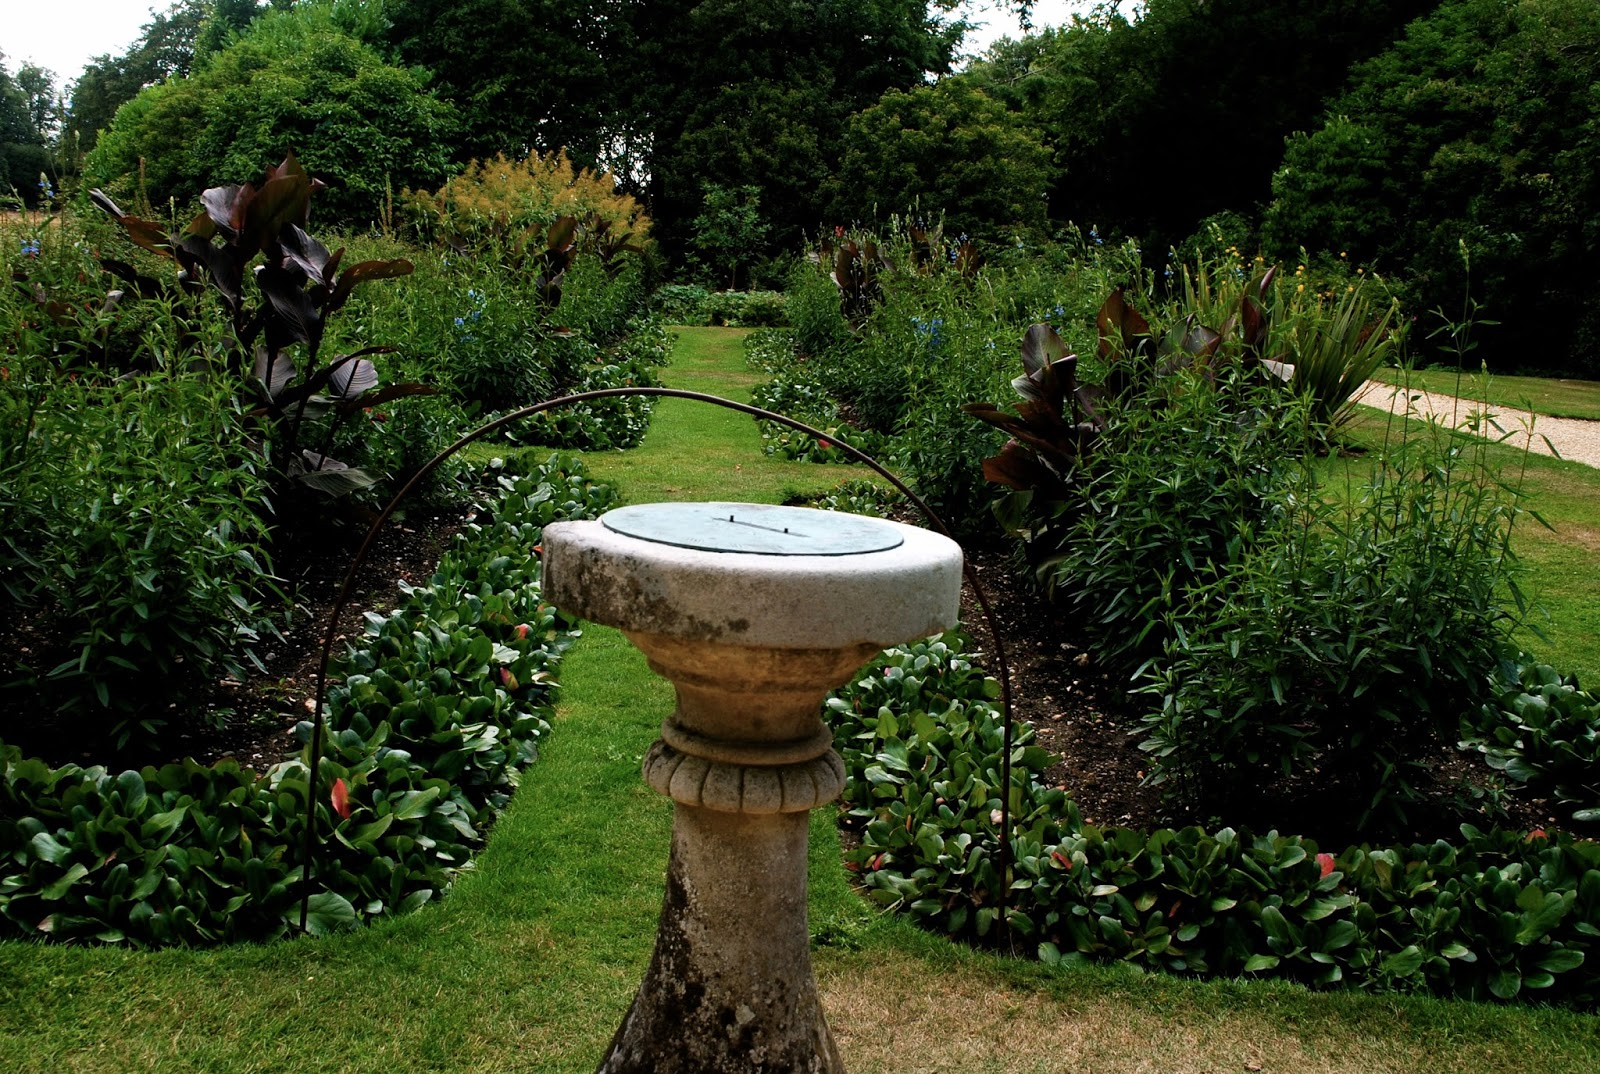 Charles Darwin's Sundial at the Downe House Garden